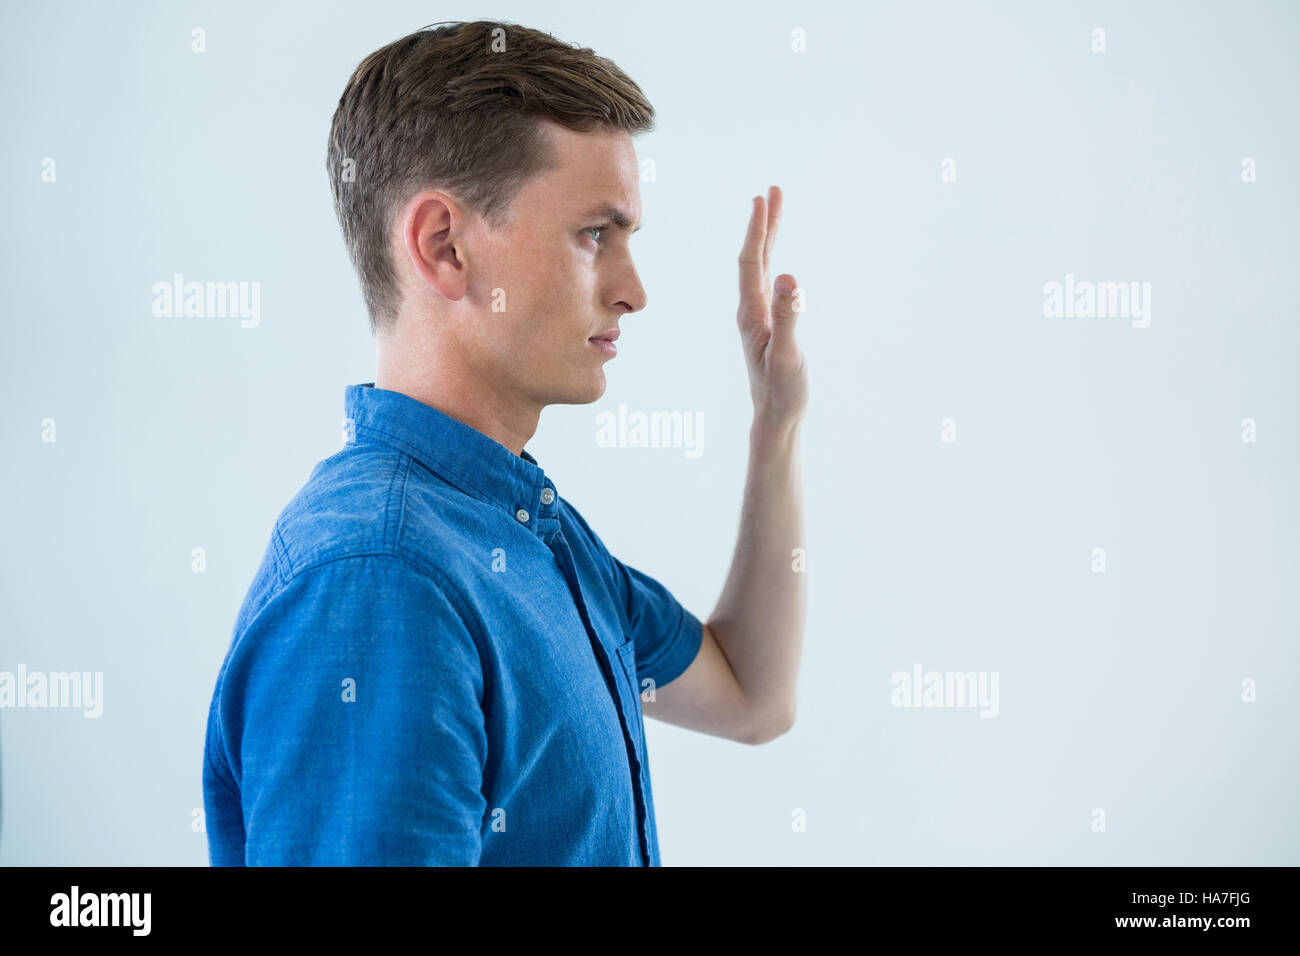 Man touching an invisible screen - Stock Image